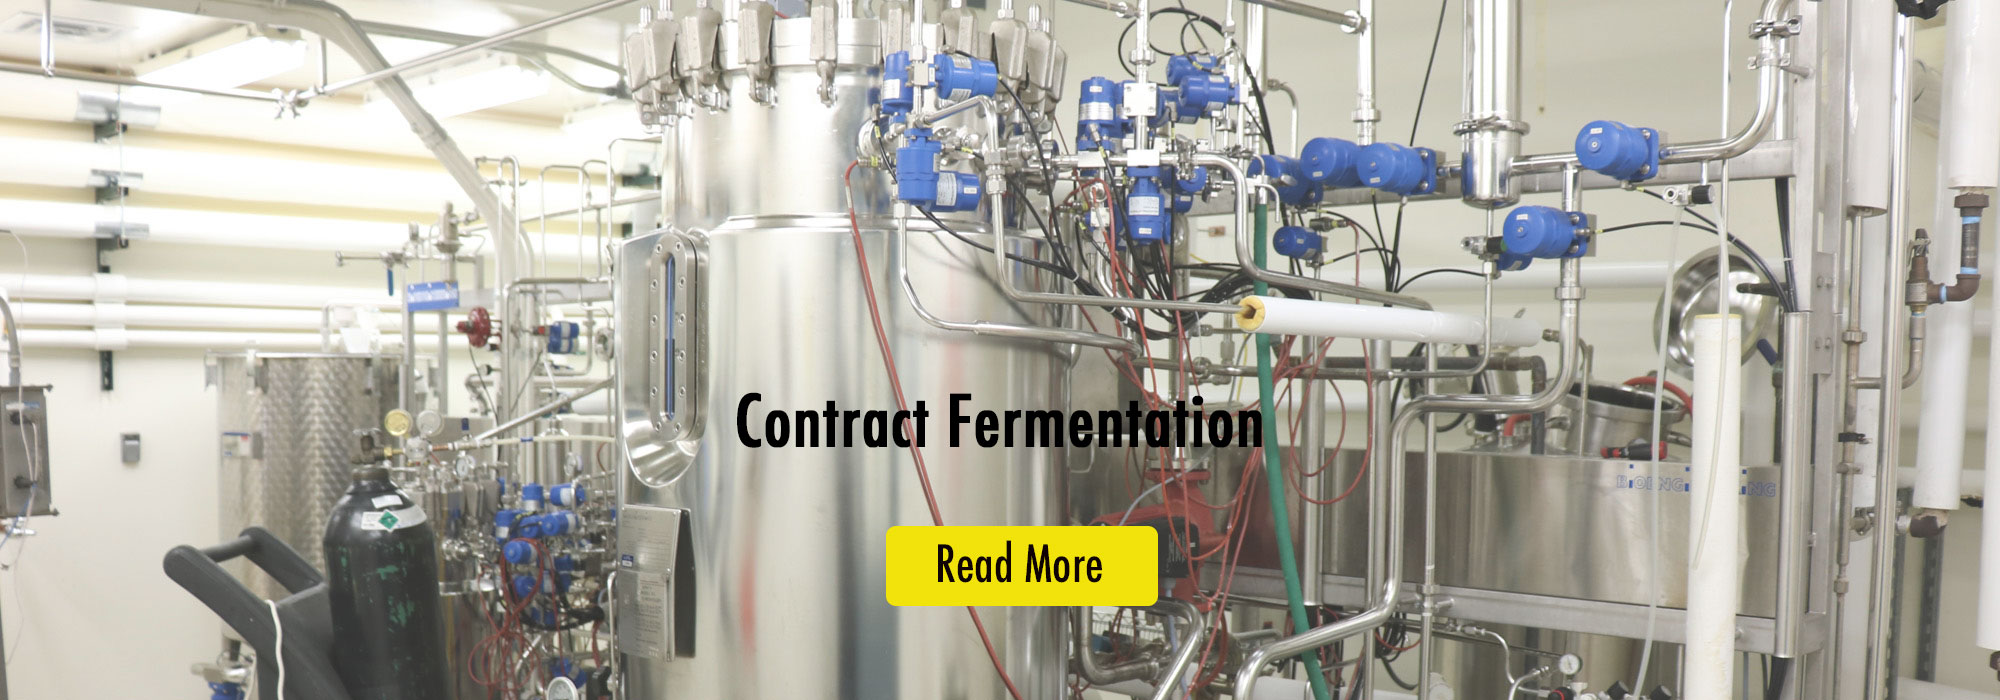 ProbioFerm Contract Fermentation